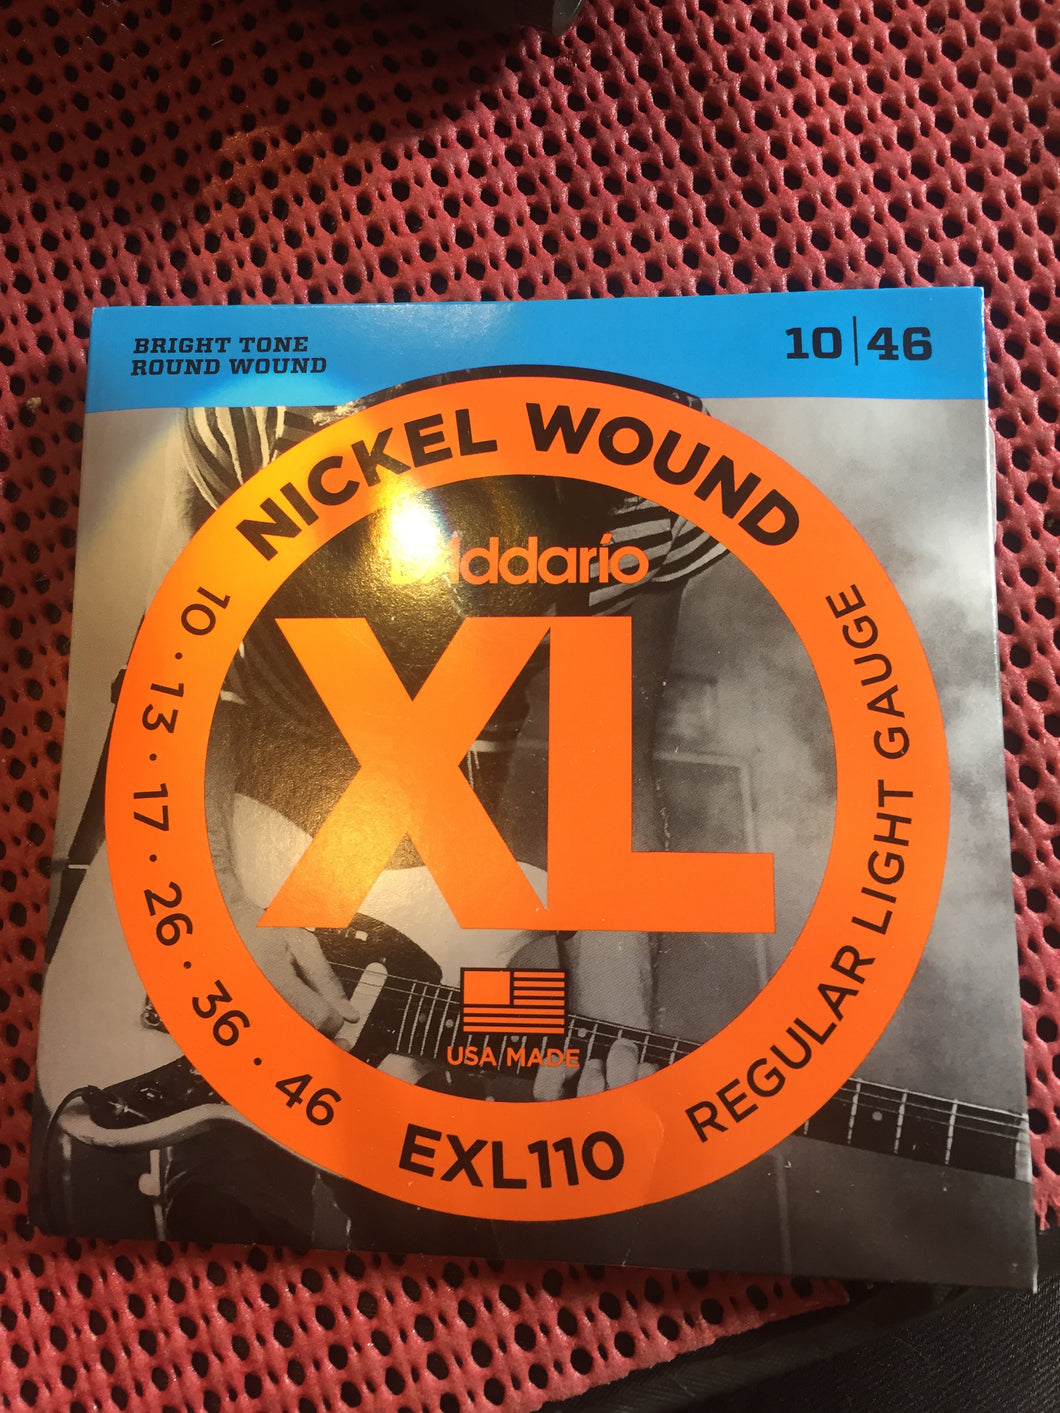 D'Addario EXL110 10/46 Regular Light Gauge